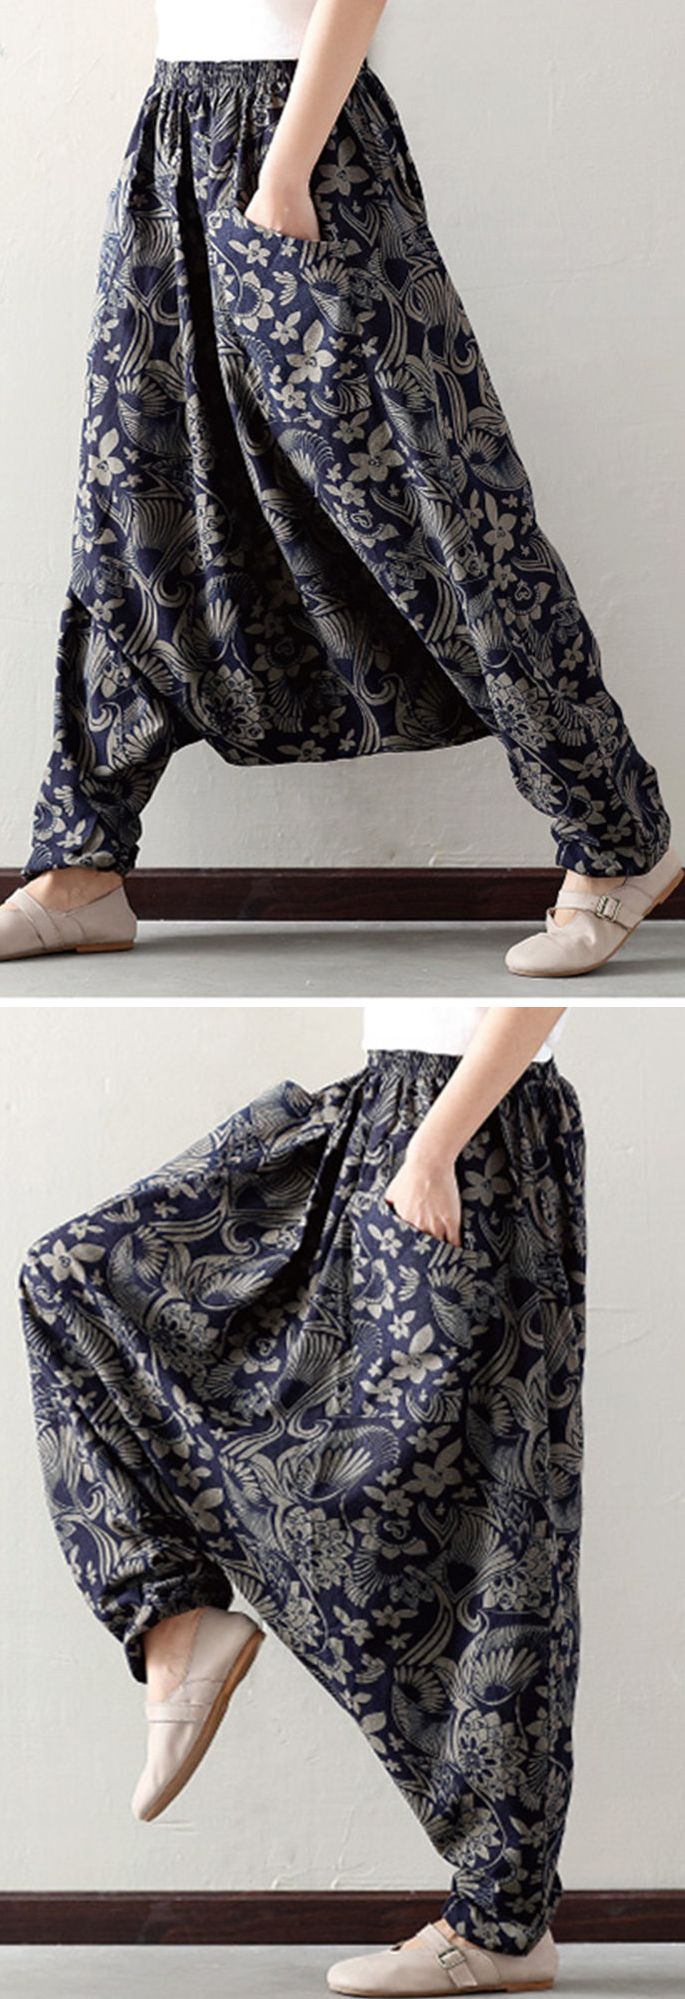 US$ 16.43 O-NEWE Loose Printed Elastic Waist Pockets Harem Pants For Women